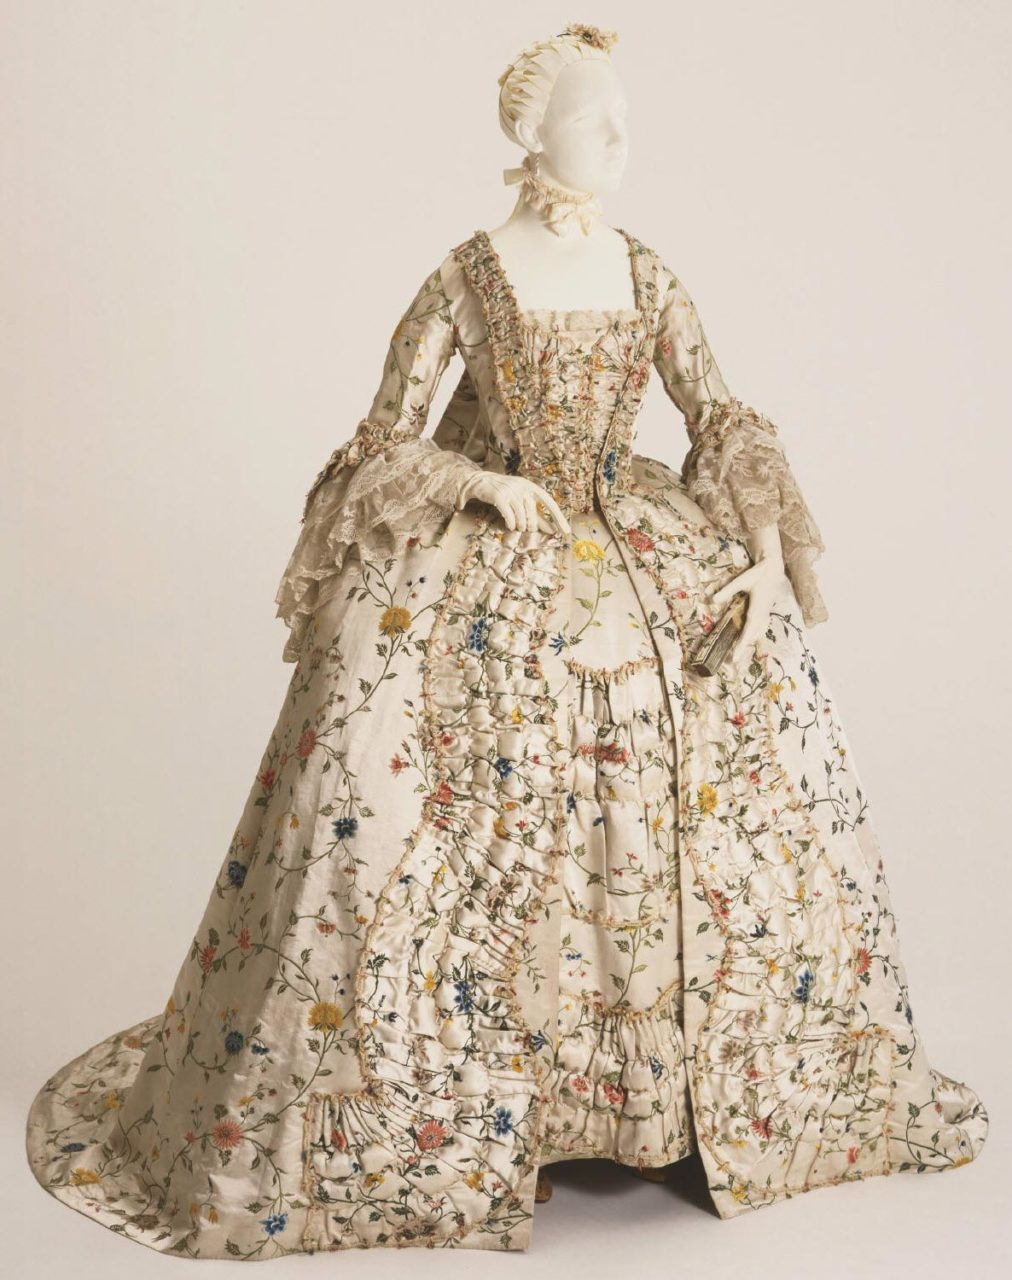 Woman's dress (Robe à la française) with Matching Stomacher and Petticoat